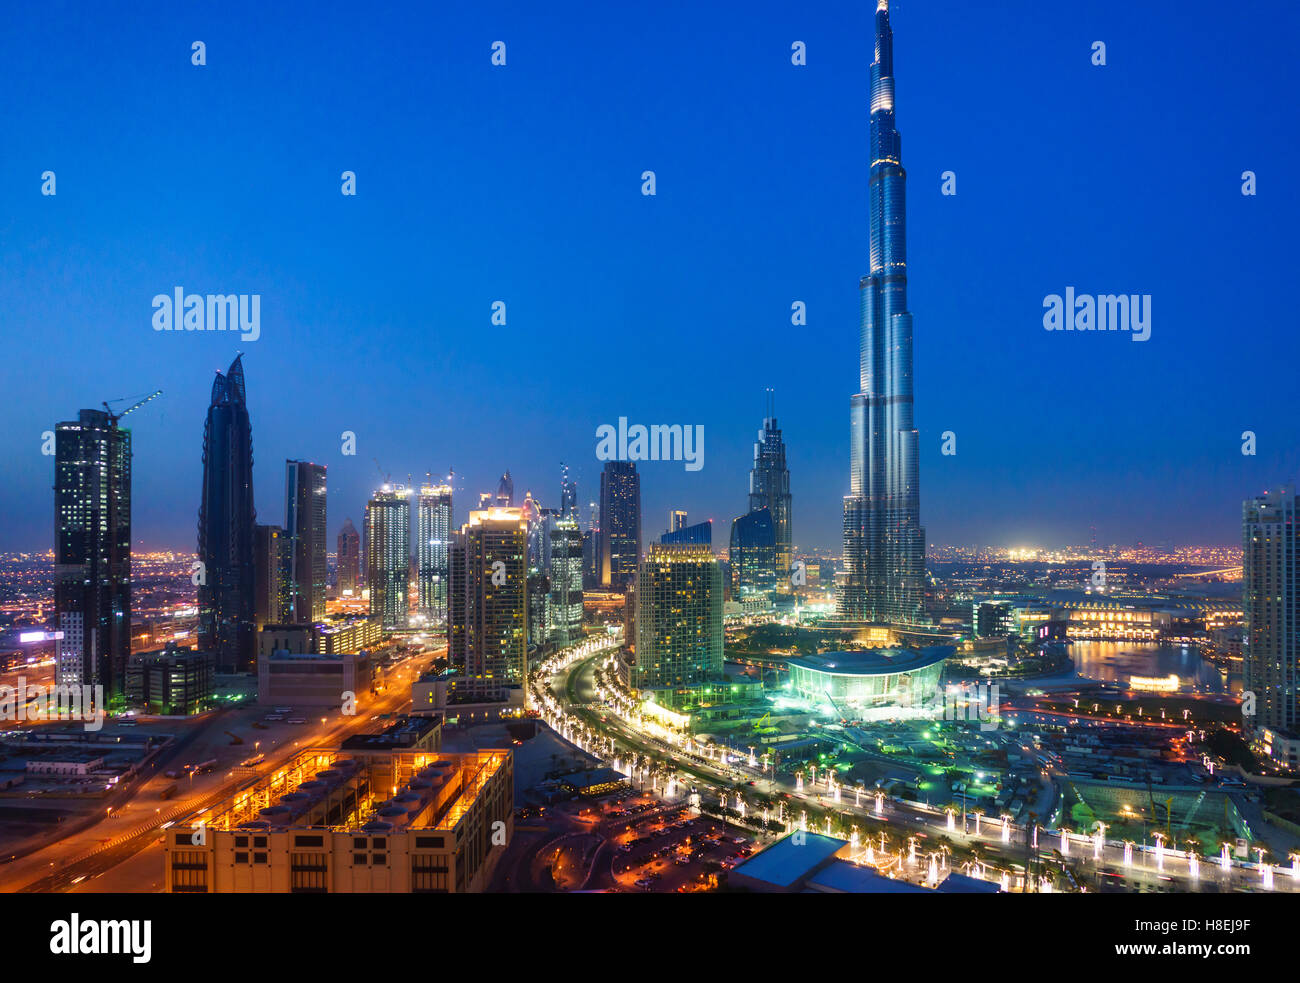 Burj Khalifa and Downtown Dubai at night, Dubai, United Arab Emirates, Middle East - Stock Image